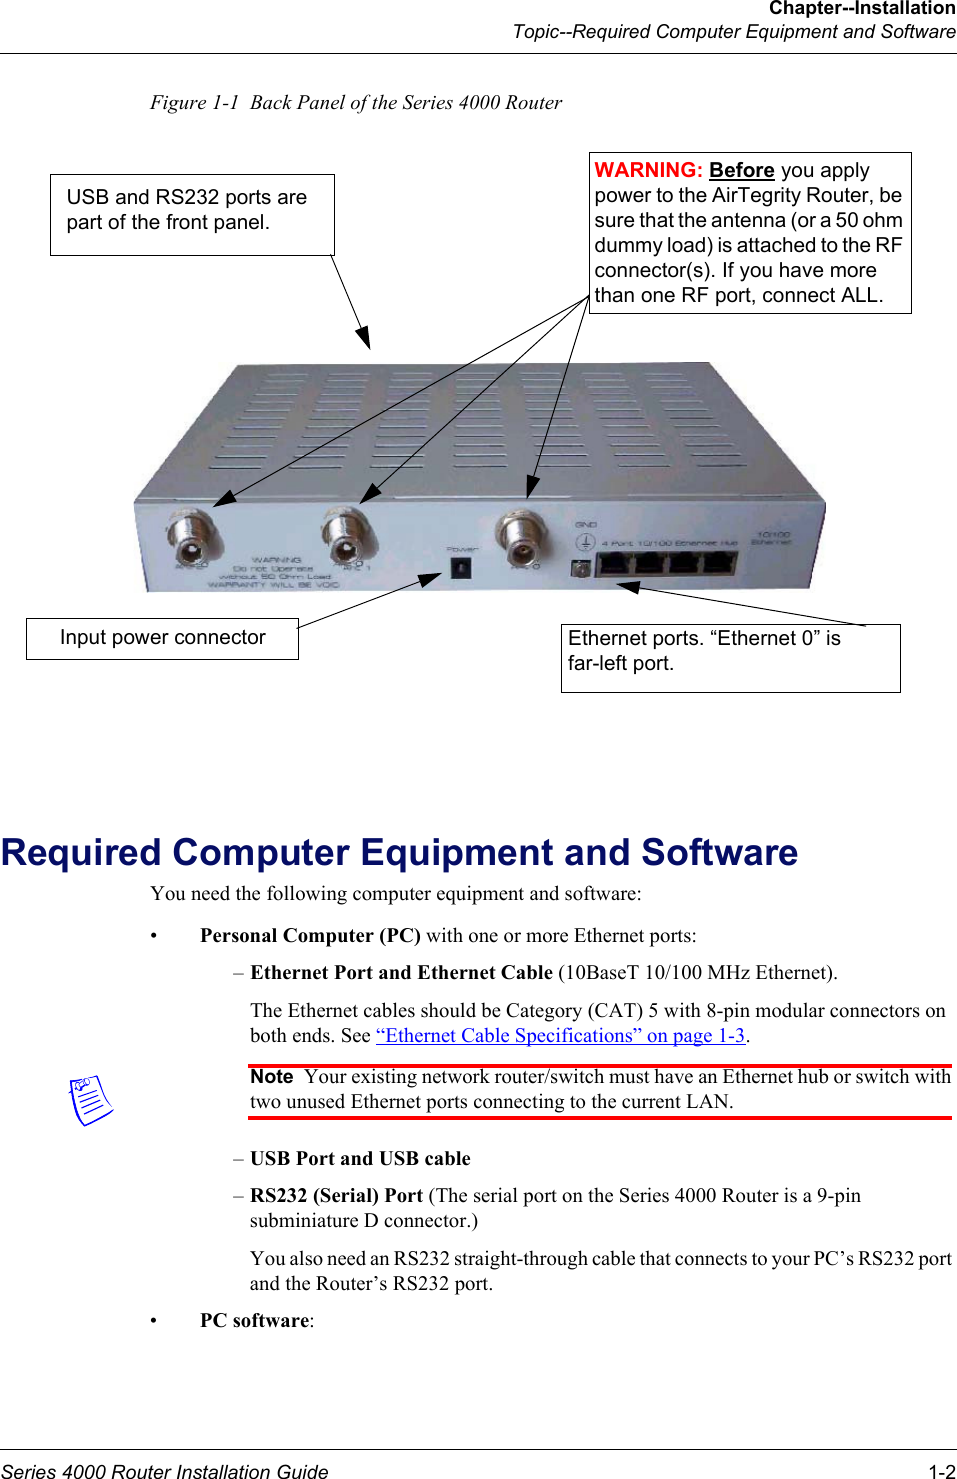 Airtegrity Wireless 3000 2024 15 Cpe Access Pointw 80211b Wiring Diagram On Straight Through Ether Pin Out Chapter Installationtopic Required Computer Equipment And Softwareseries 4000 Router Installation Guide 1